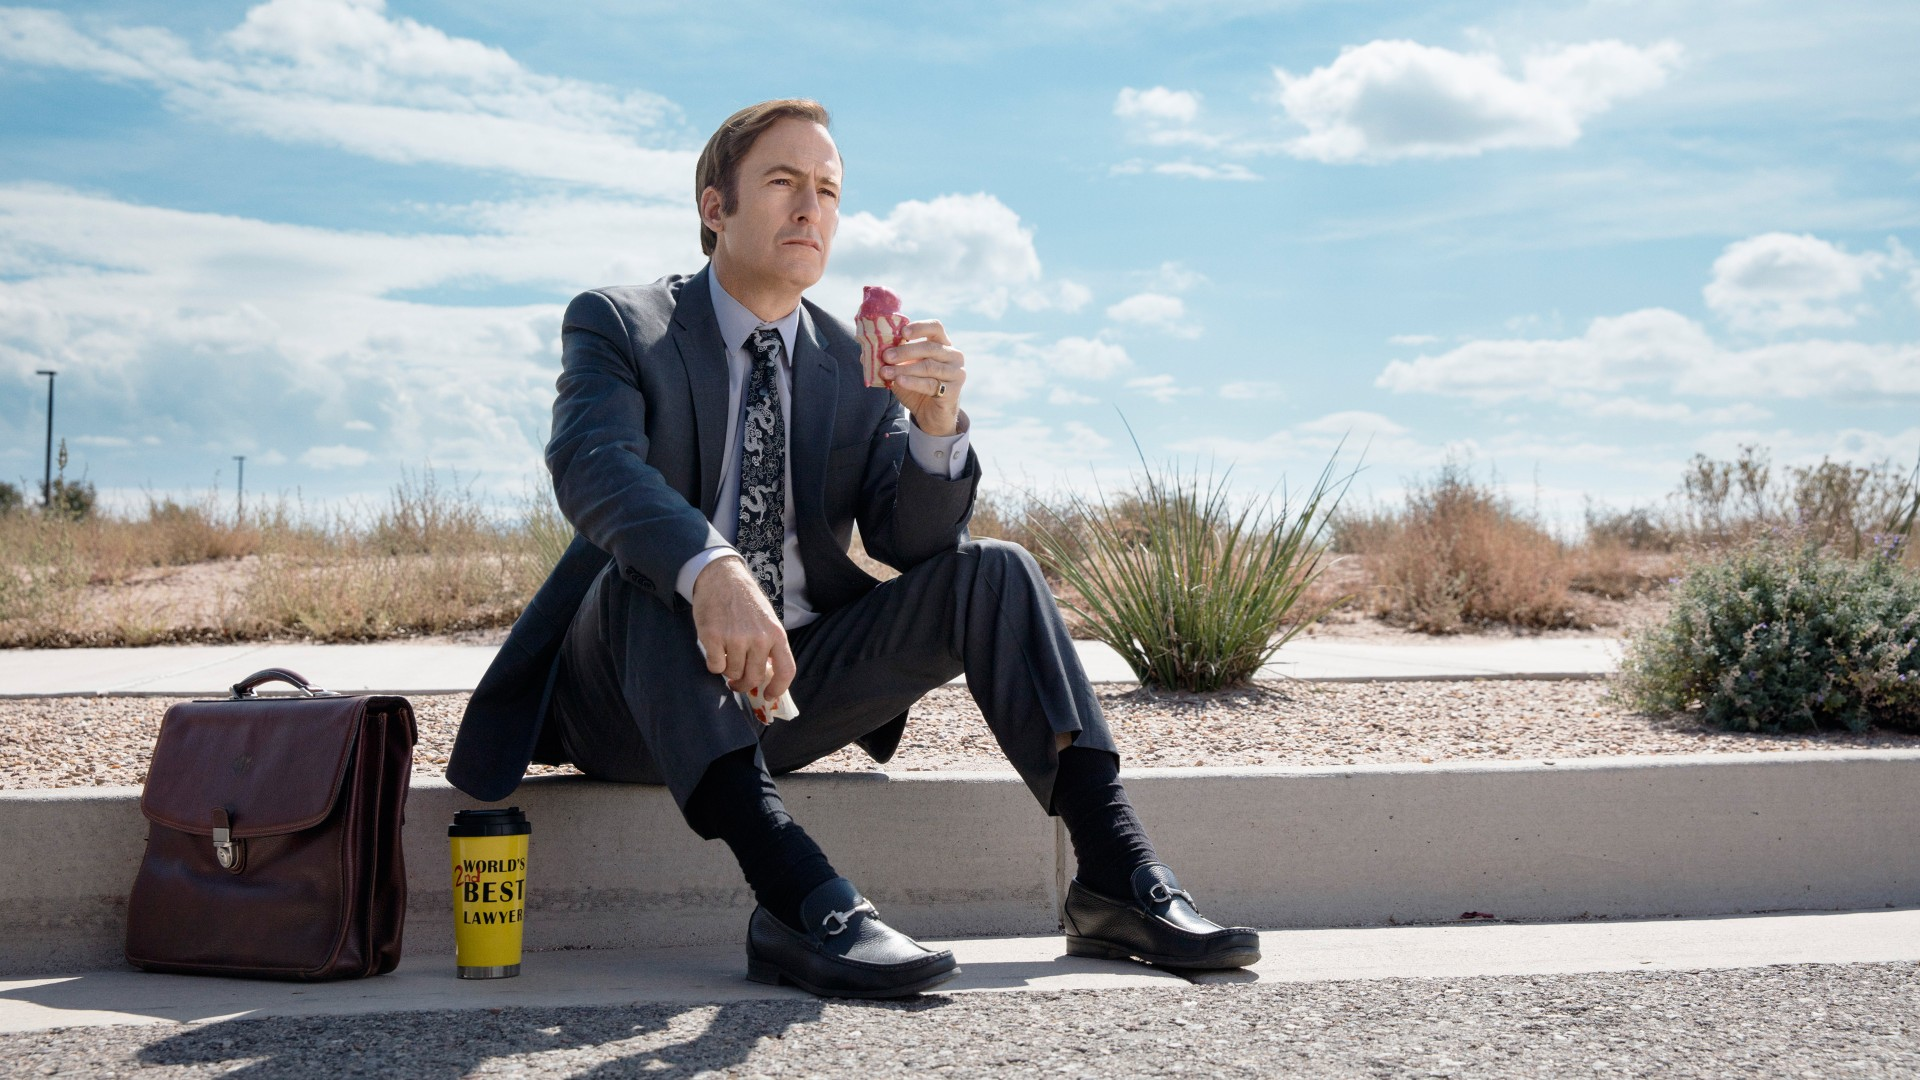 3d Wallpaper Pc Windows 7 Better Call Saul Season 2 4k Wallpapers Hd Wallpapers